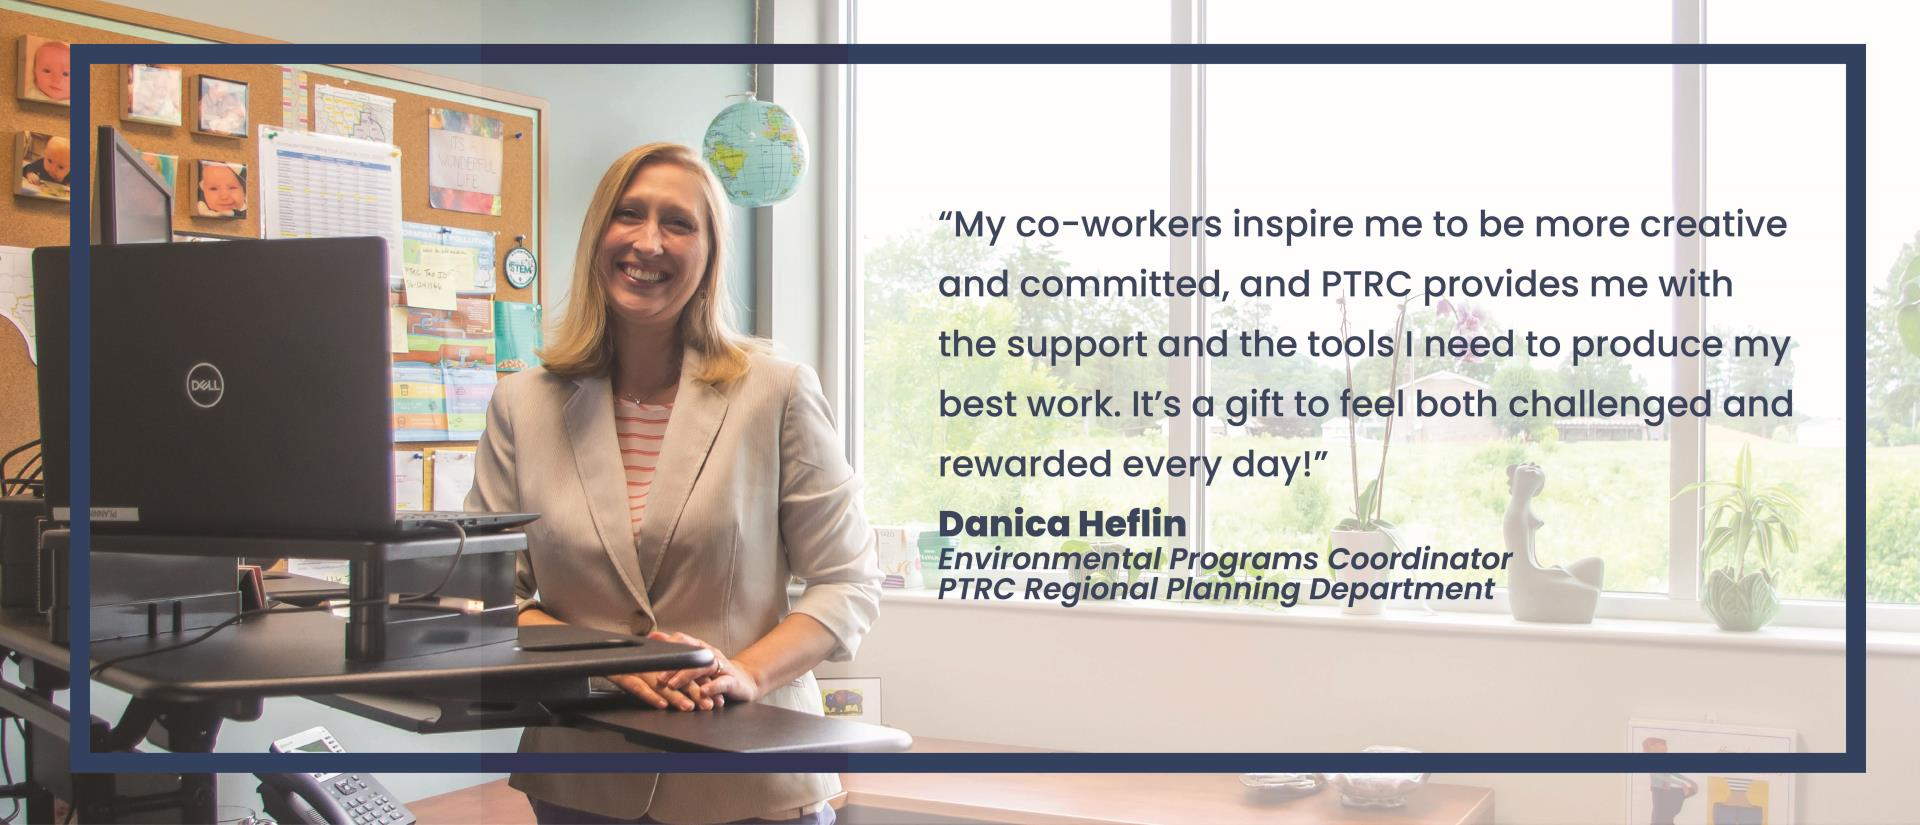 "Danica Heflin, Environmental Programs Coordinator says ""My co-workers inspire me to be more creative and committed, and PTRC provides me with the support and the tools I need to produce my best work."